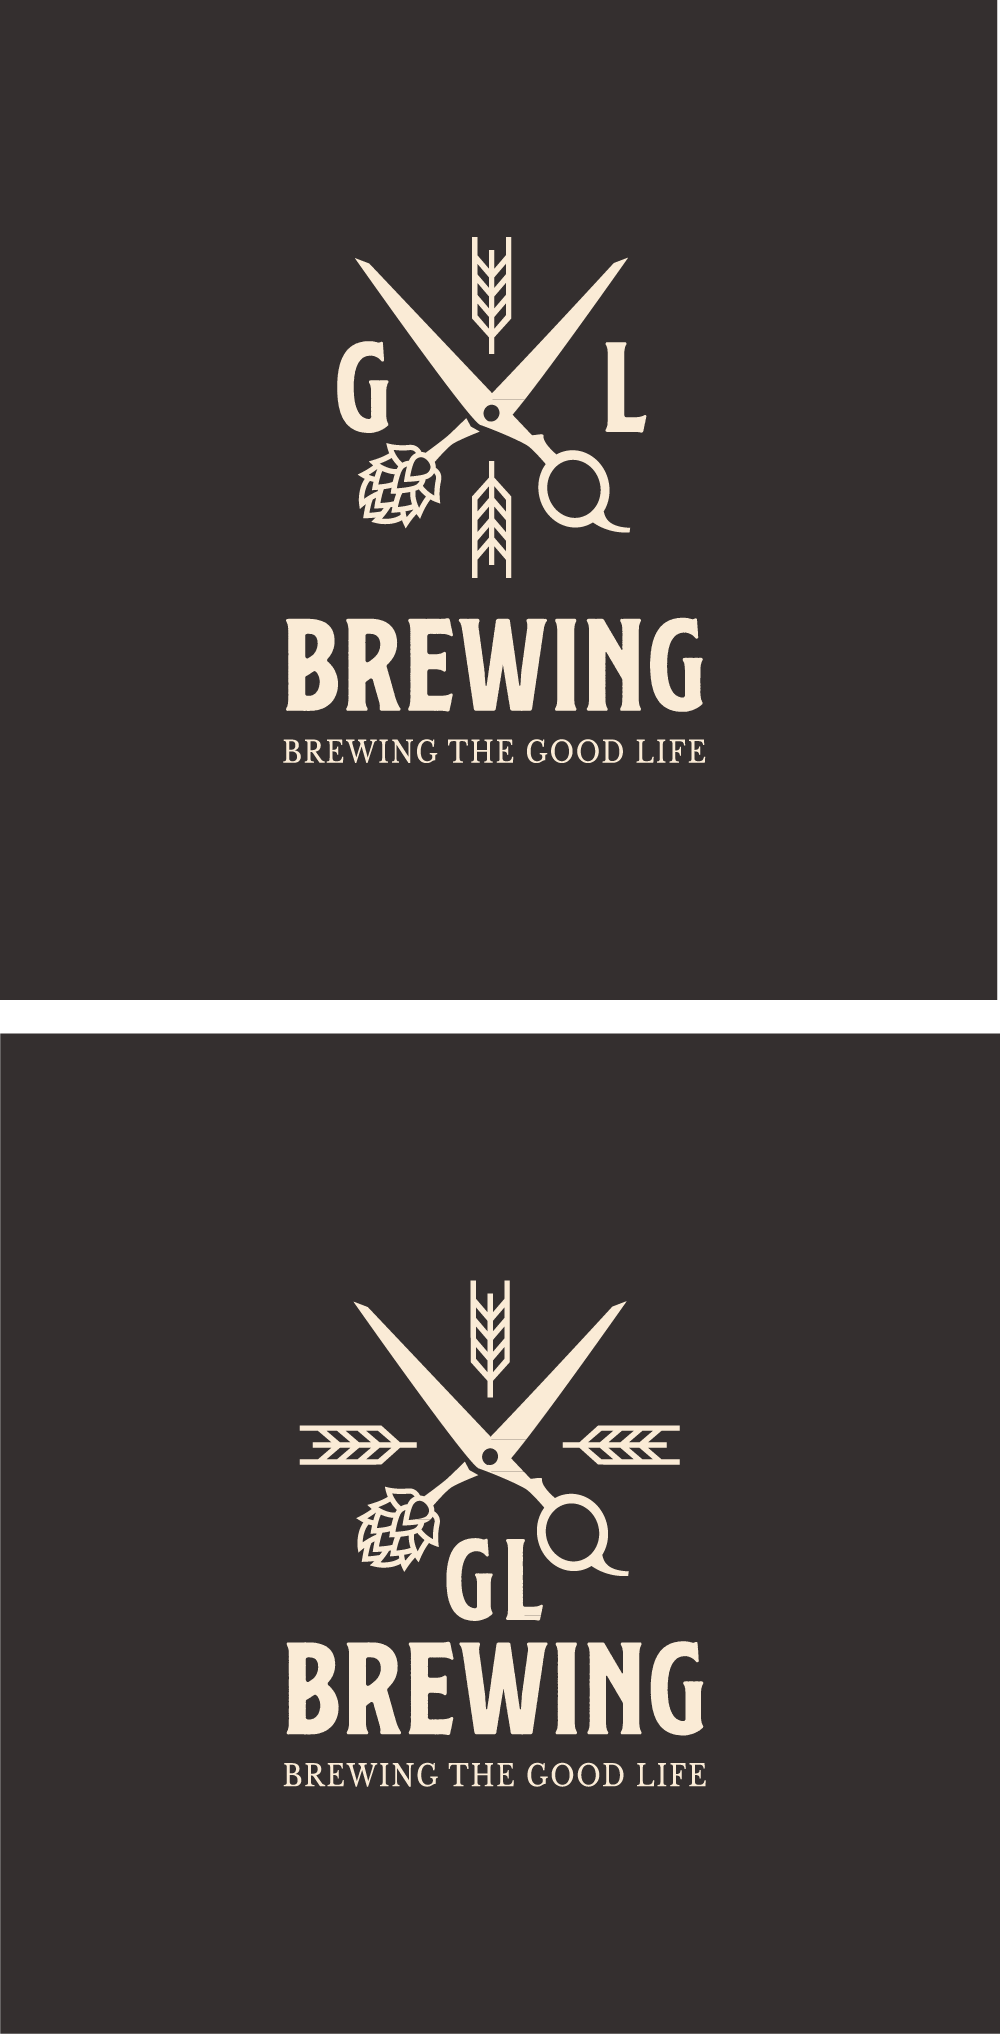 Existing logo needs designers touch for brewery